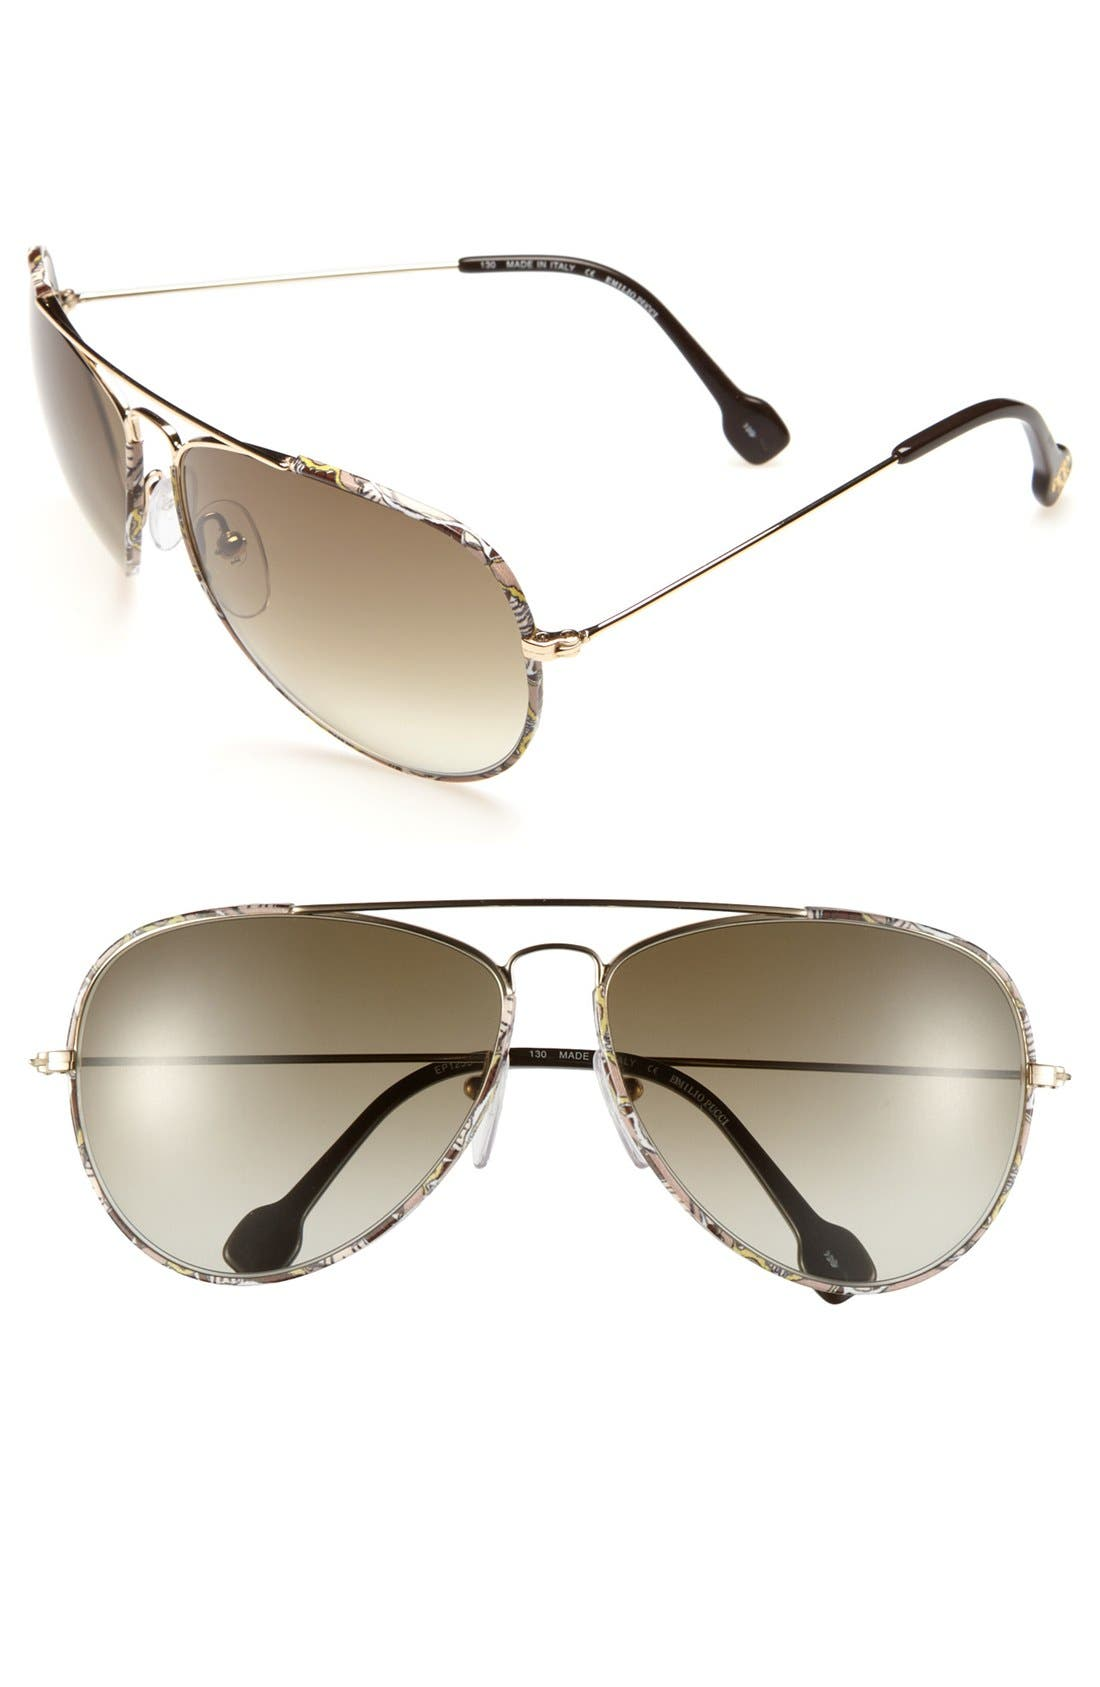 Alternate Image 1 Selected - Emilio Pucci 62mm Metal Aviator Sunglasses (Special Purchase)